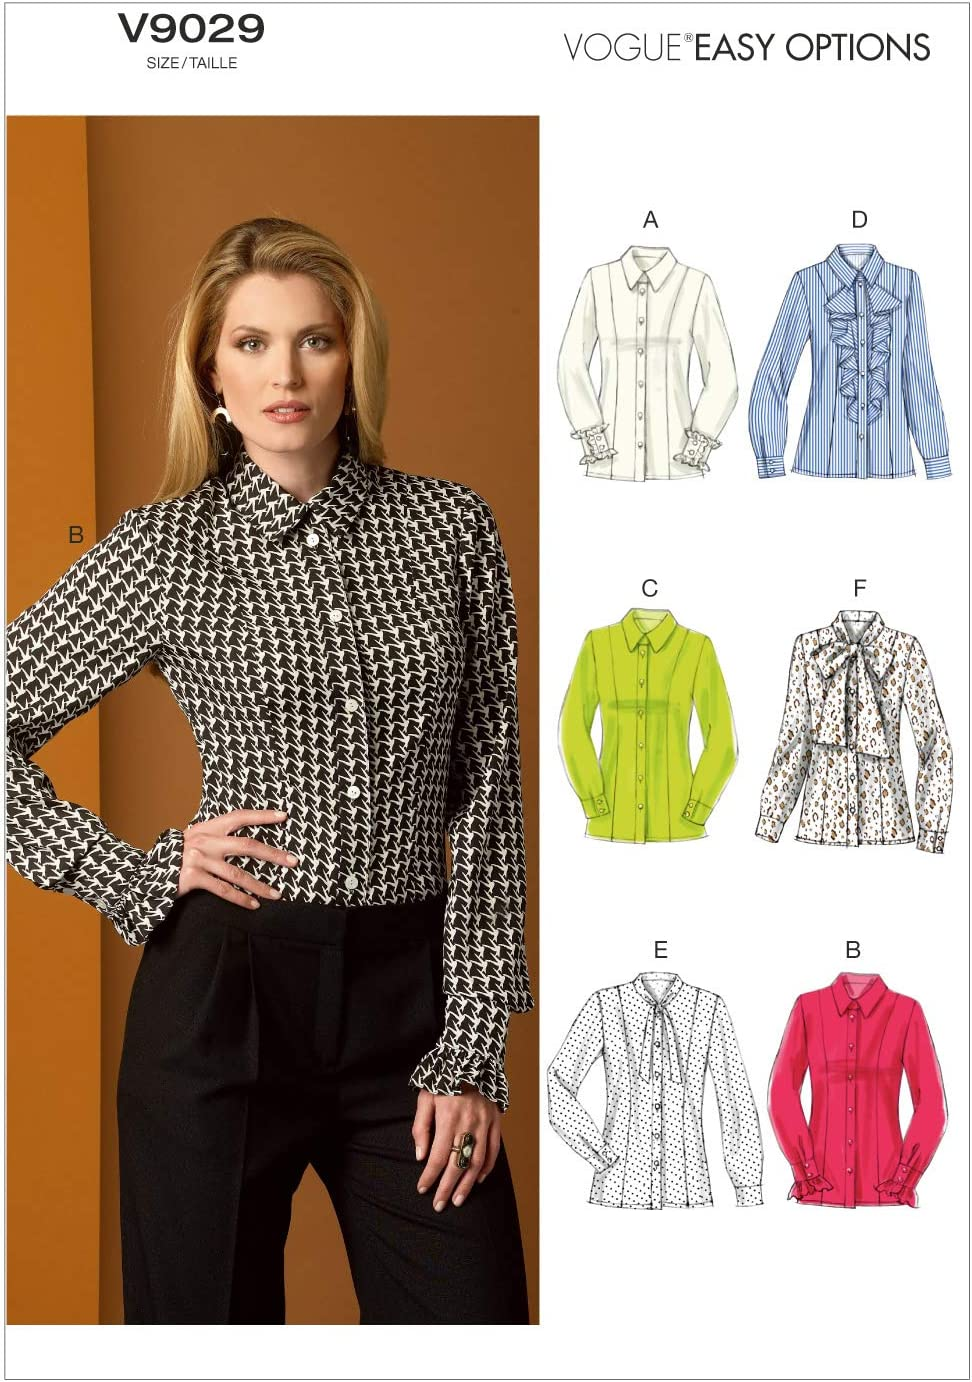 VOGUE PATTERNS V12 Misses' Blouse Sewing Template, Size B12 12 12 12 12 12